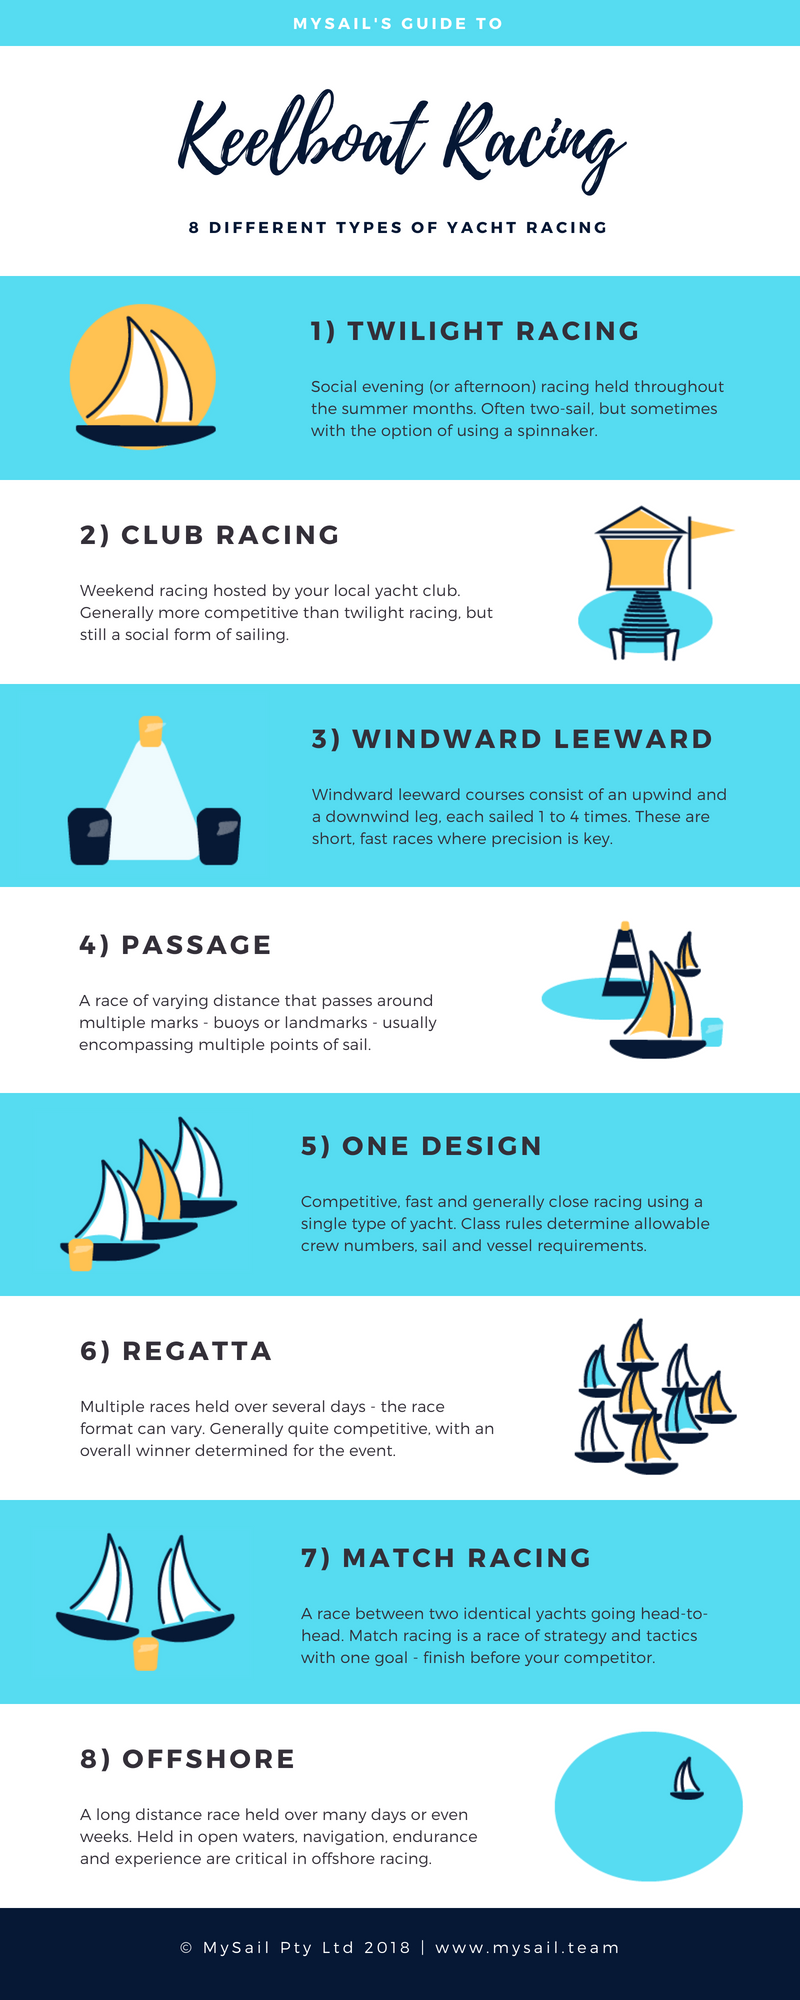 Different types of keelboat racing - infographic